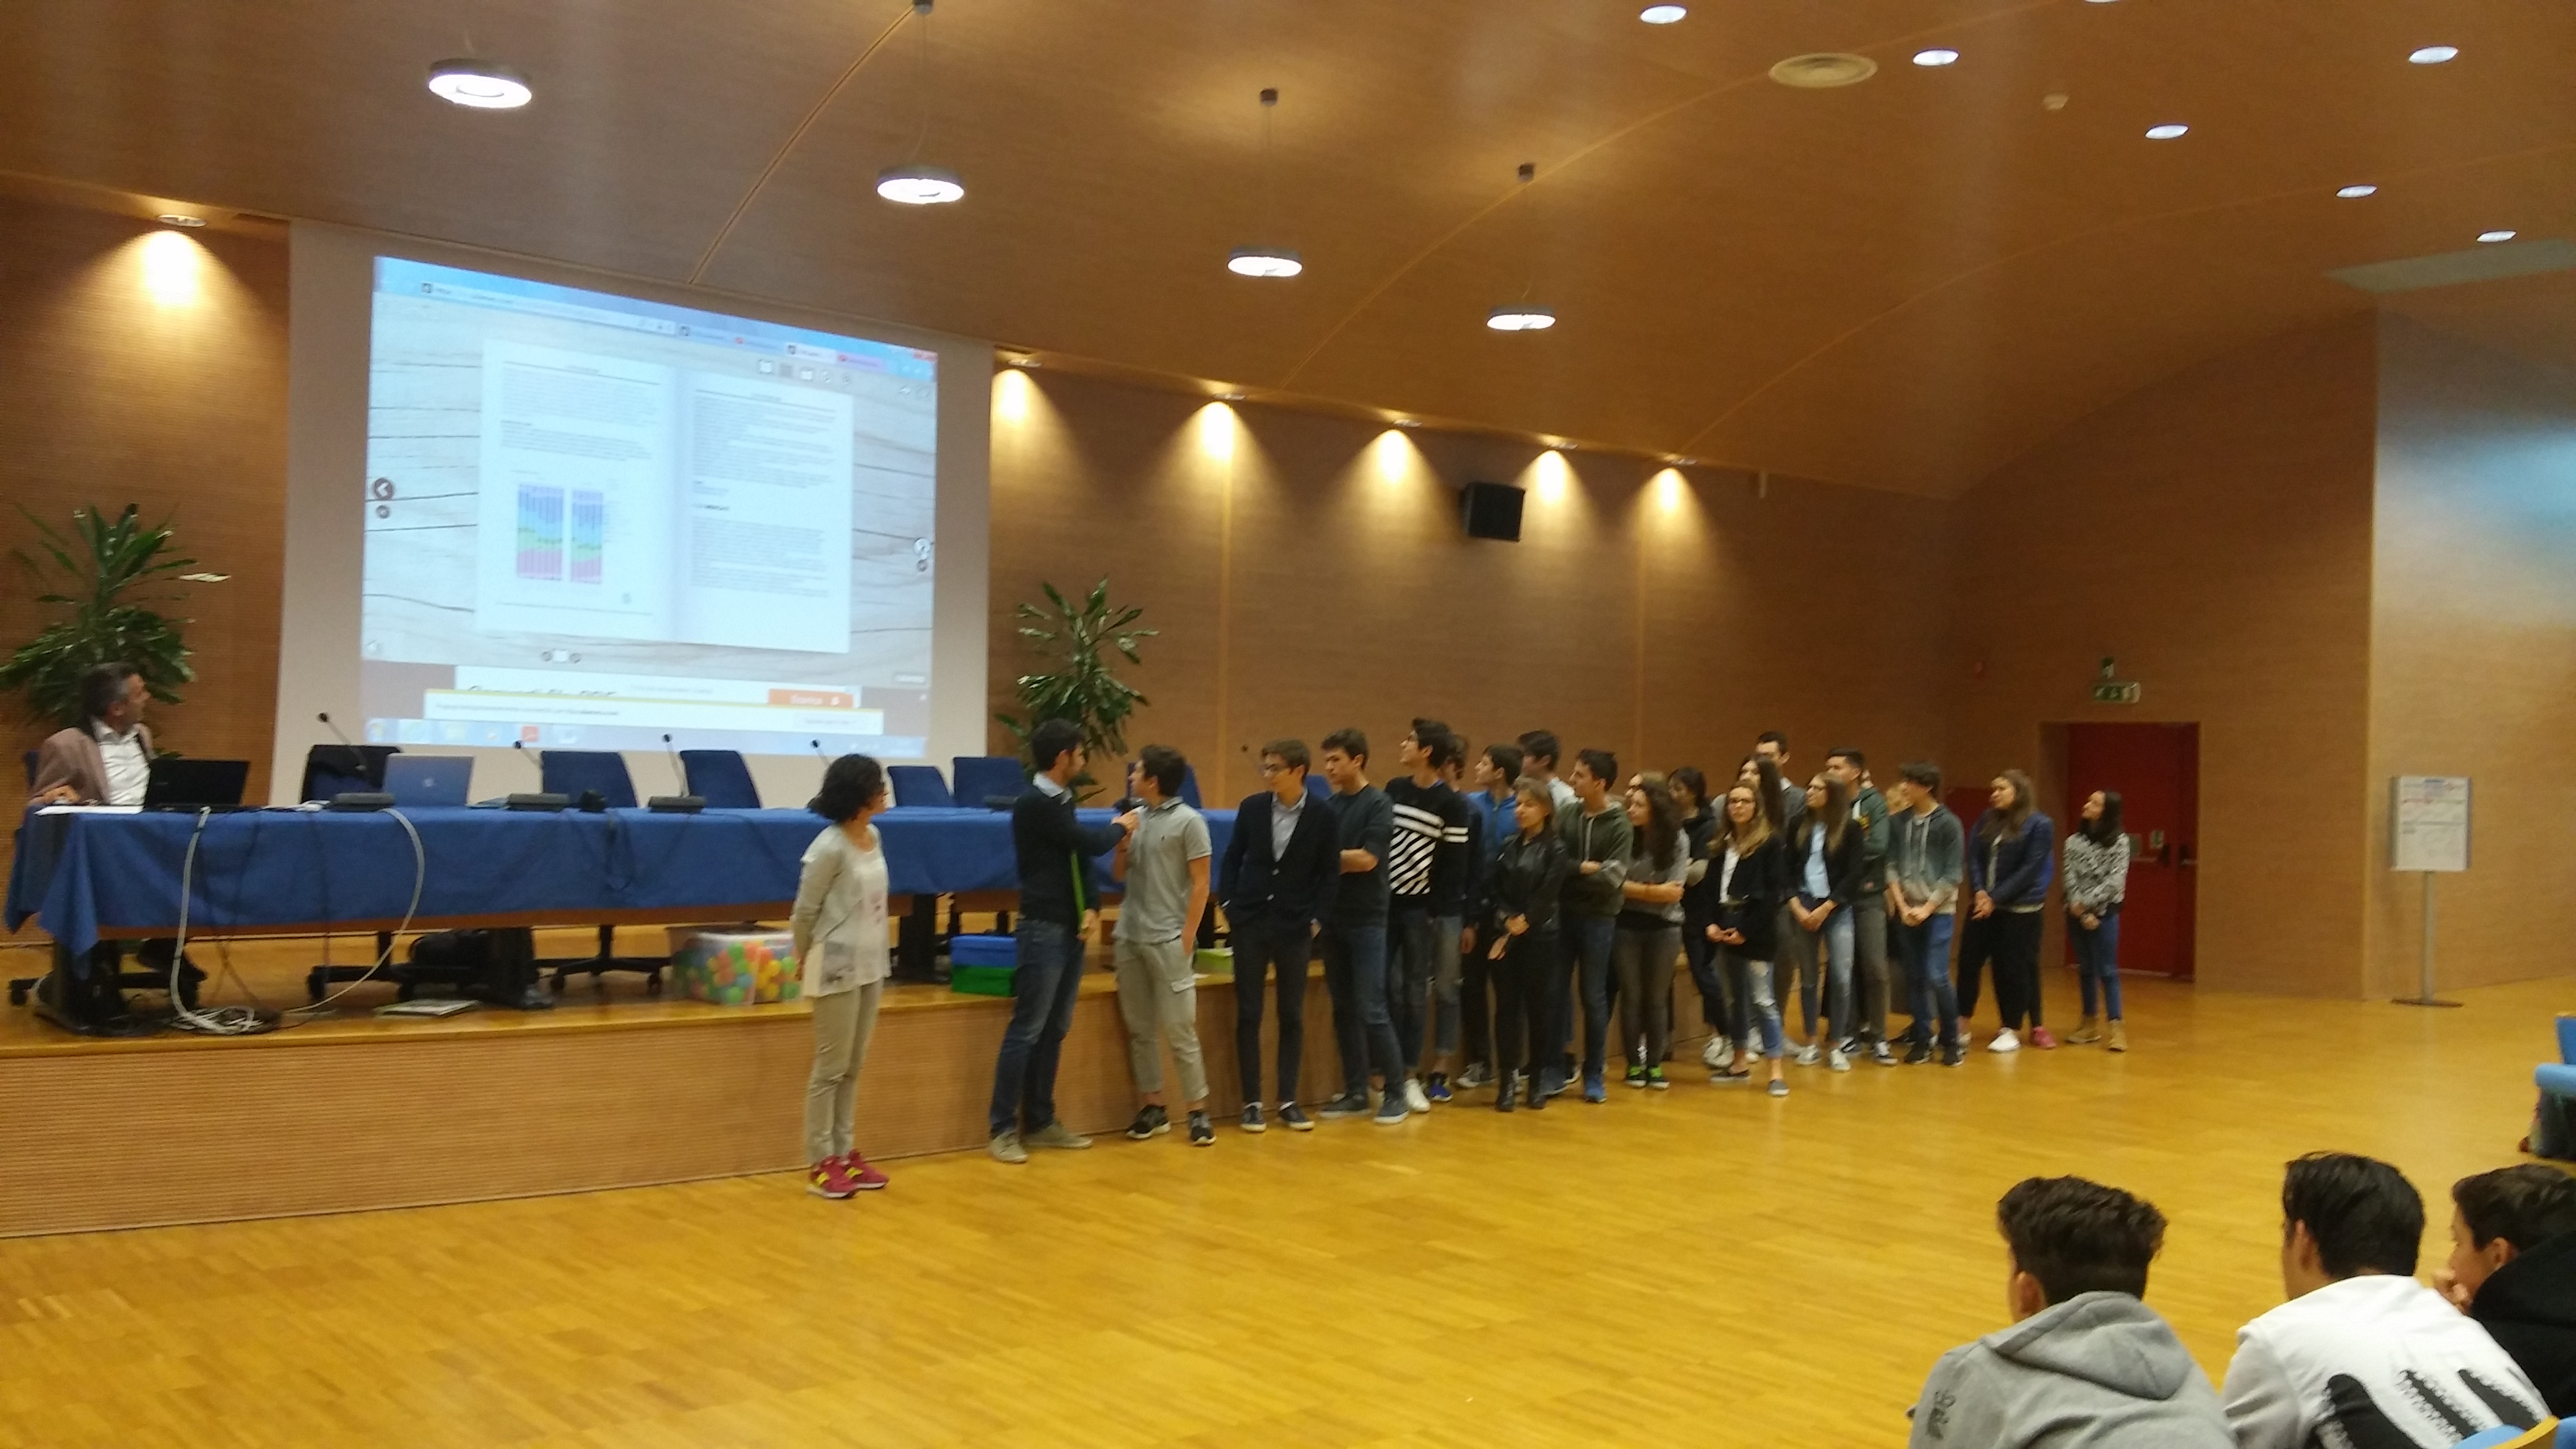 Primi classificati (superiori): 2A Liceo Scientifico G. Marinelli di Udine